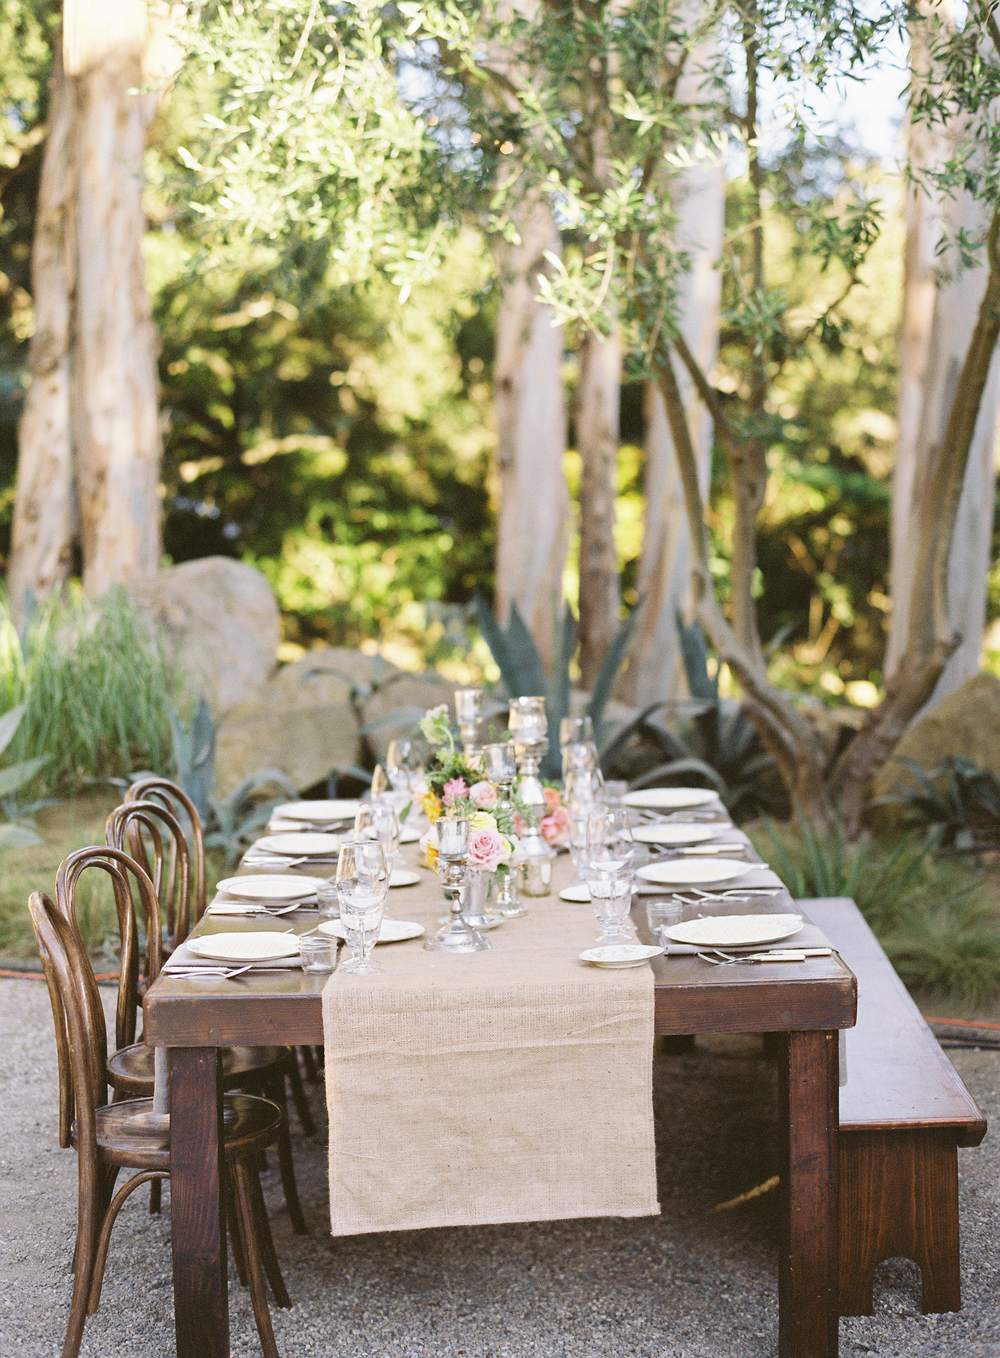 magnoliaeventdesign.com | Private Estate Wedding in Montecito | Linda Chaja Photography | Magnolia Event Design and Planning | Santa Barbara Wedding Planner